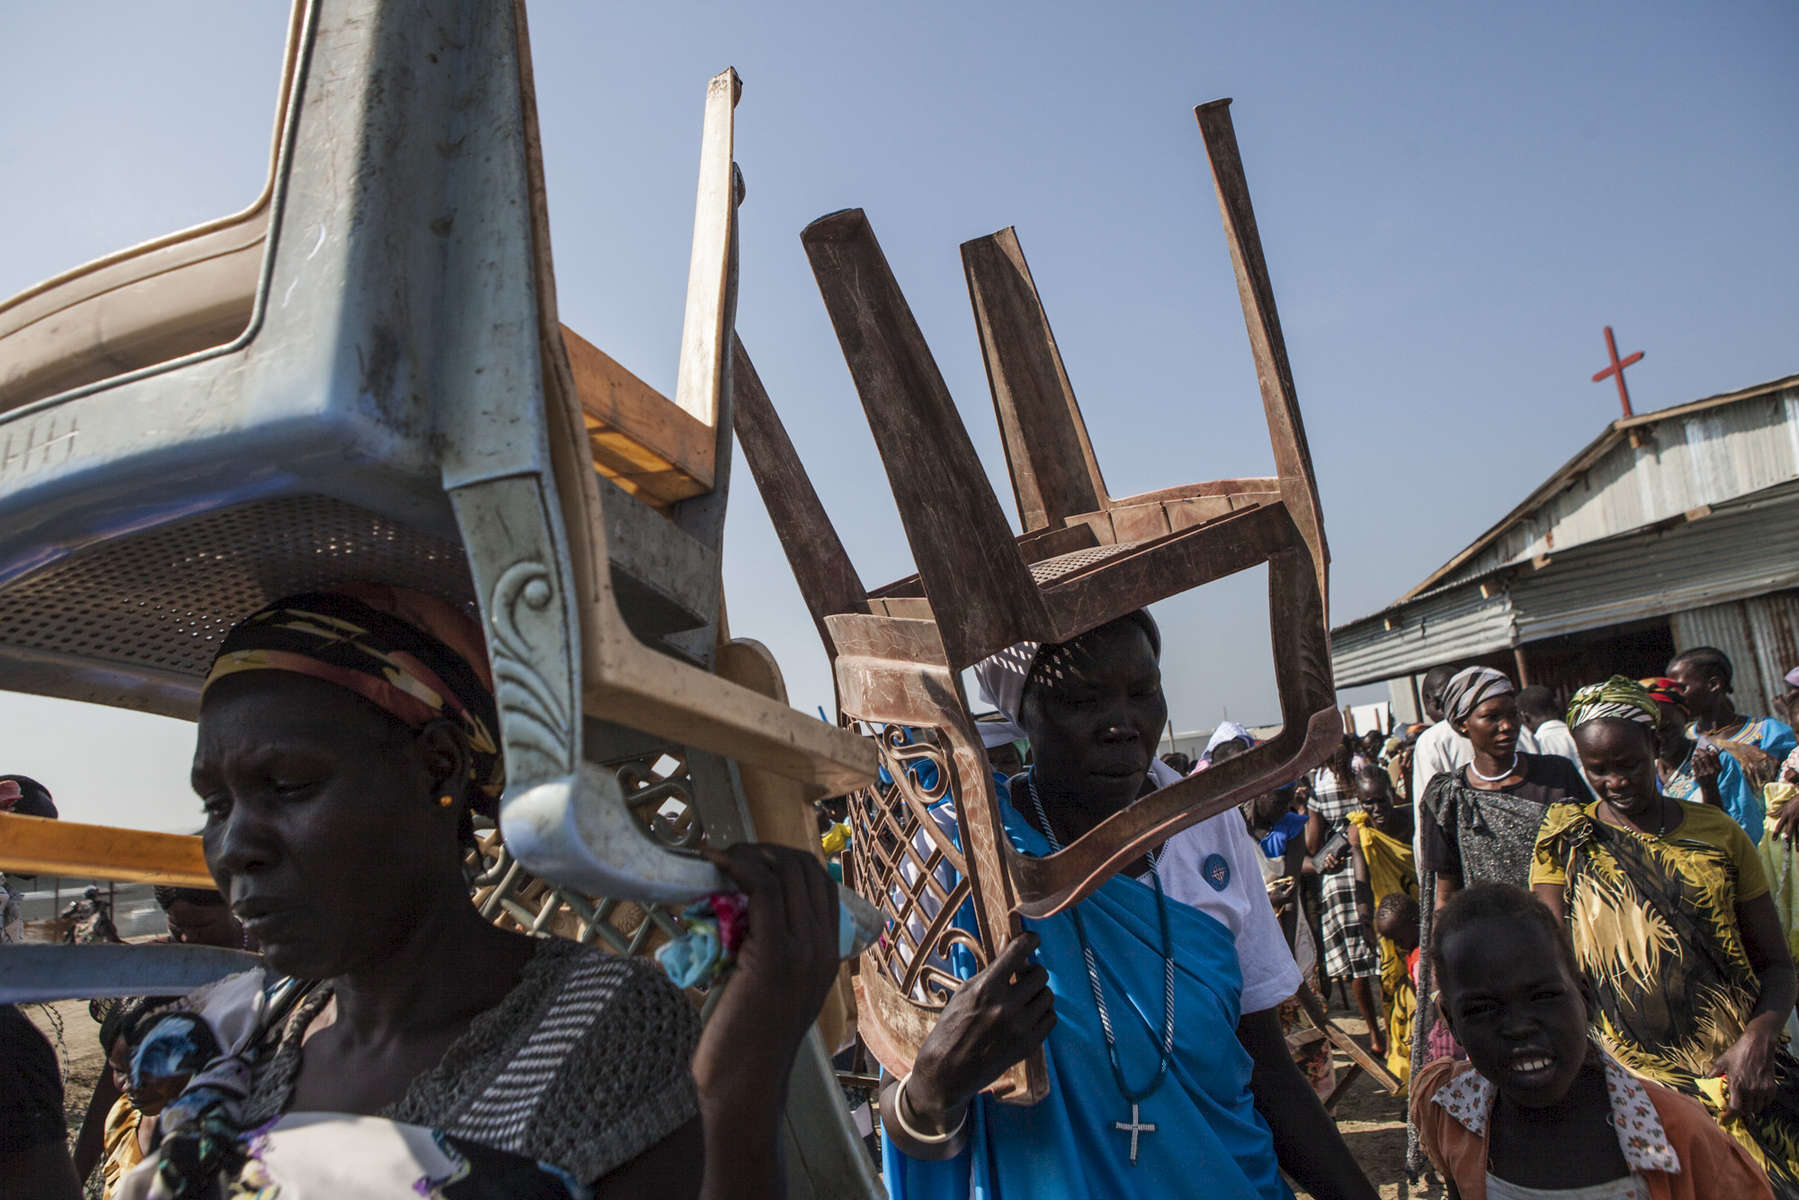 Church members carry out chairs and benches after service at the Dolieb Hill Presbyterian Church in the Protection of Civilians (POC) site at the United Nations Mission in South Sudan (UNMISS) compound in Malakal, South Sudan on Sunday, July 10, 2016. The Malakal POC site houses over 32,000 displaced people mainly from the Shilluk and Nuer tribes. In February of this year, members of the Dinka tribe, who resided in the camp at the time, carried out a coordinated attack within the site leading to the destruction of hundreds of shelters and many deaths. Since then, most members of the Dinka tribe have fled to Malakal town where they occupy the homes of those still displaced.